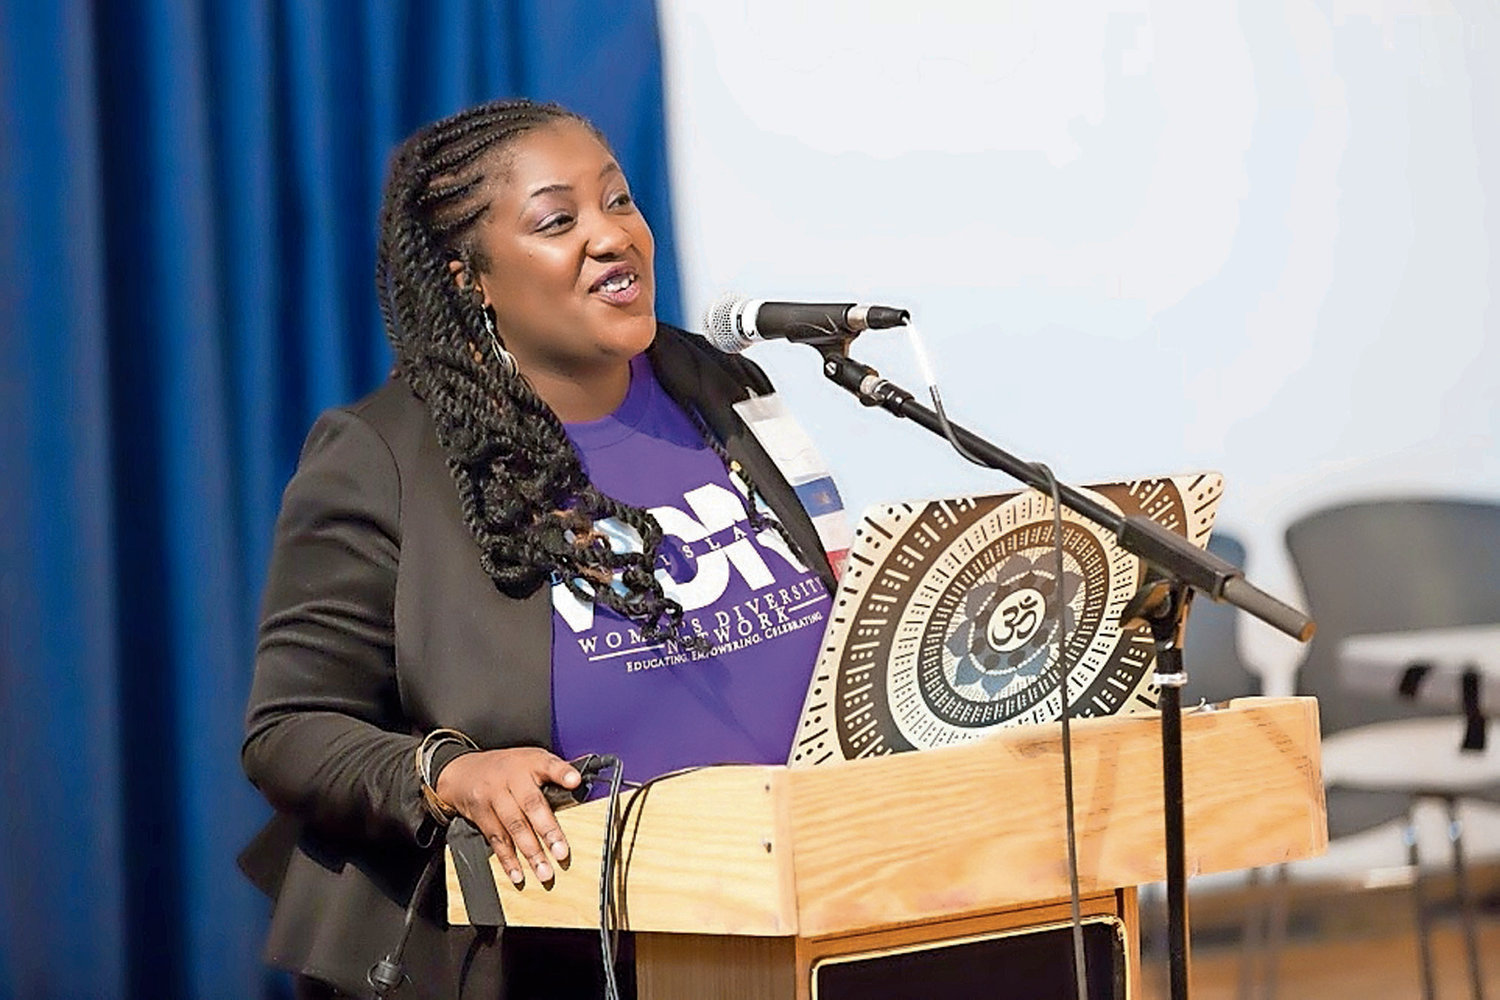 Shanequa Levin, 40, of Huntington Station, is the founder of Women's Diversity Network, a group that advocates for the racial and cultural integration of systems.